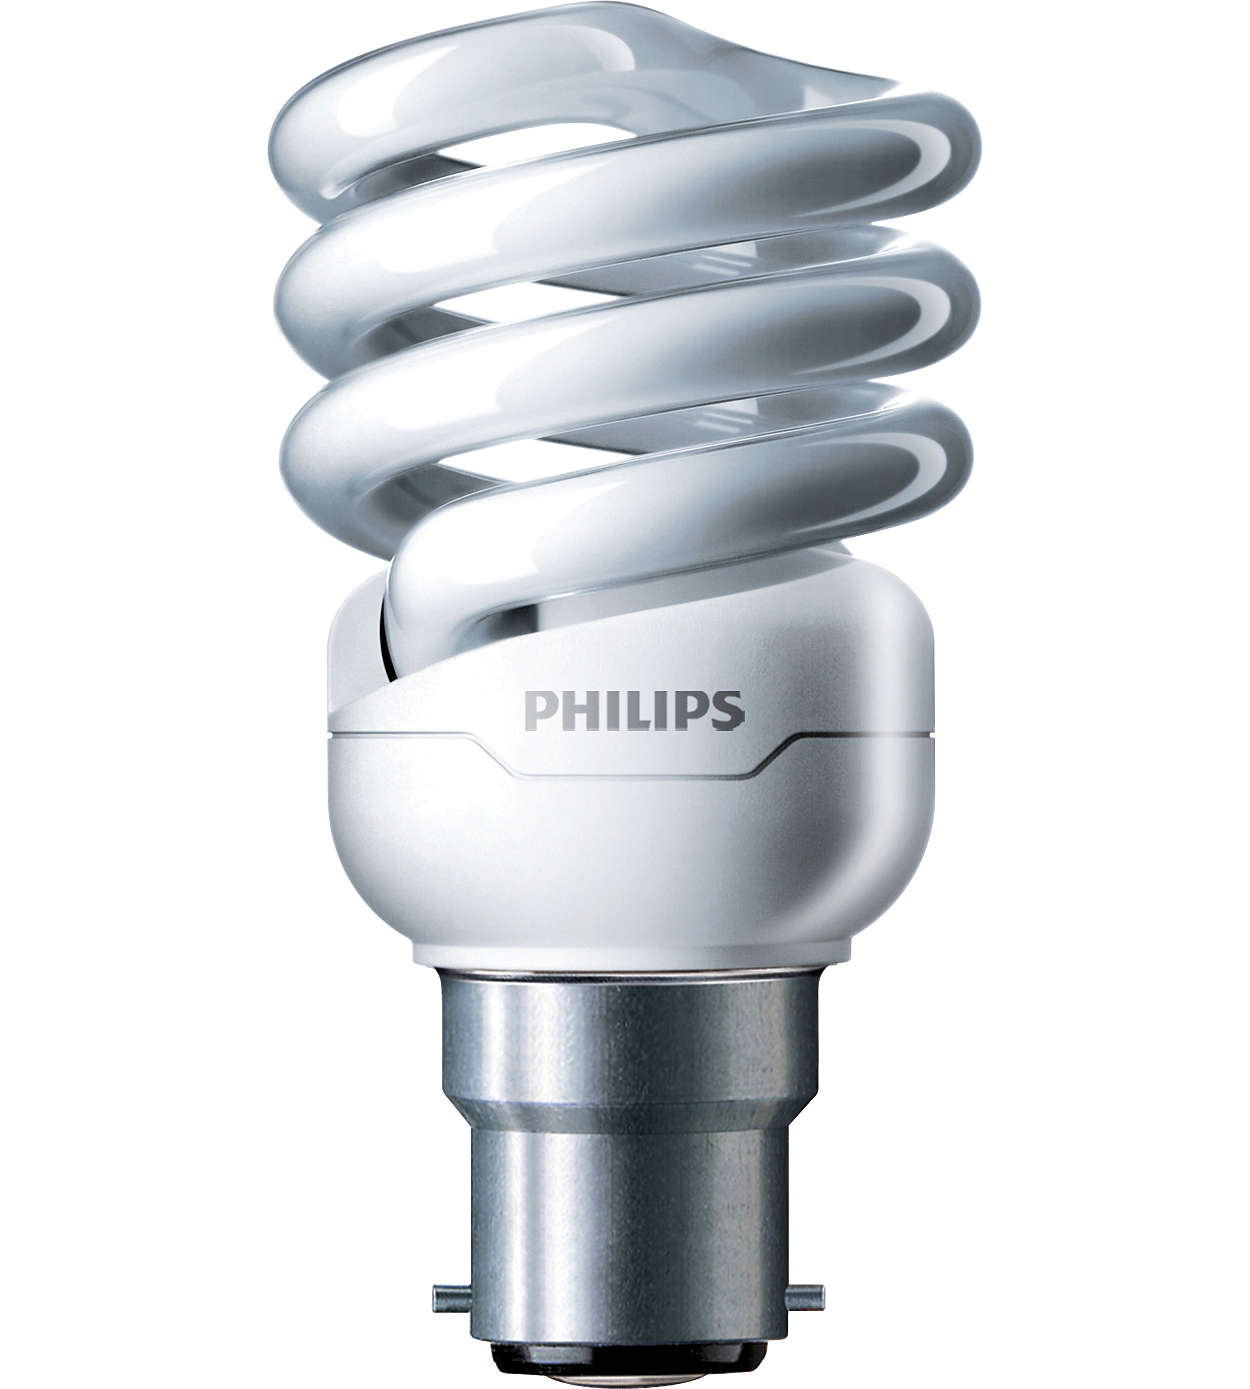 Spreadhead spiral shape energy saving products, preferred by over 90% of consumers